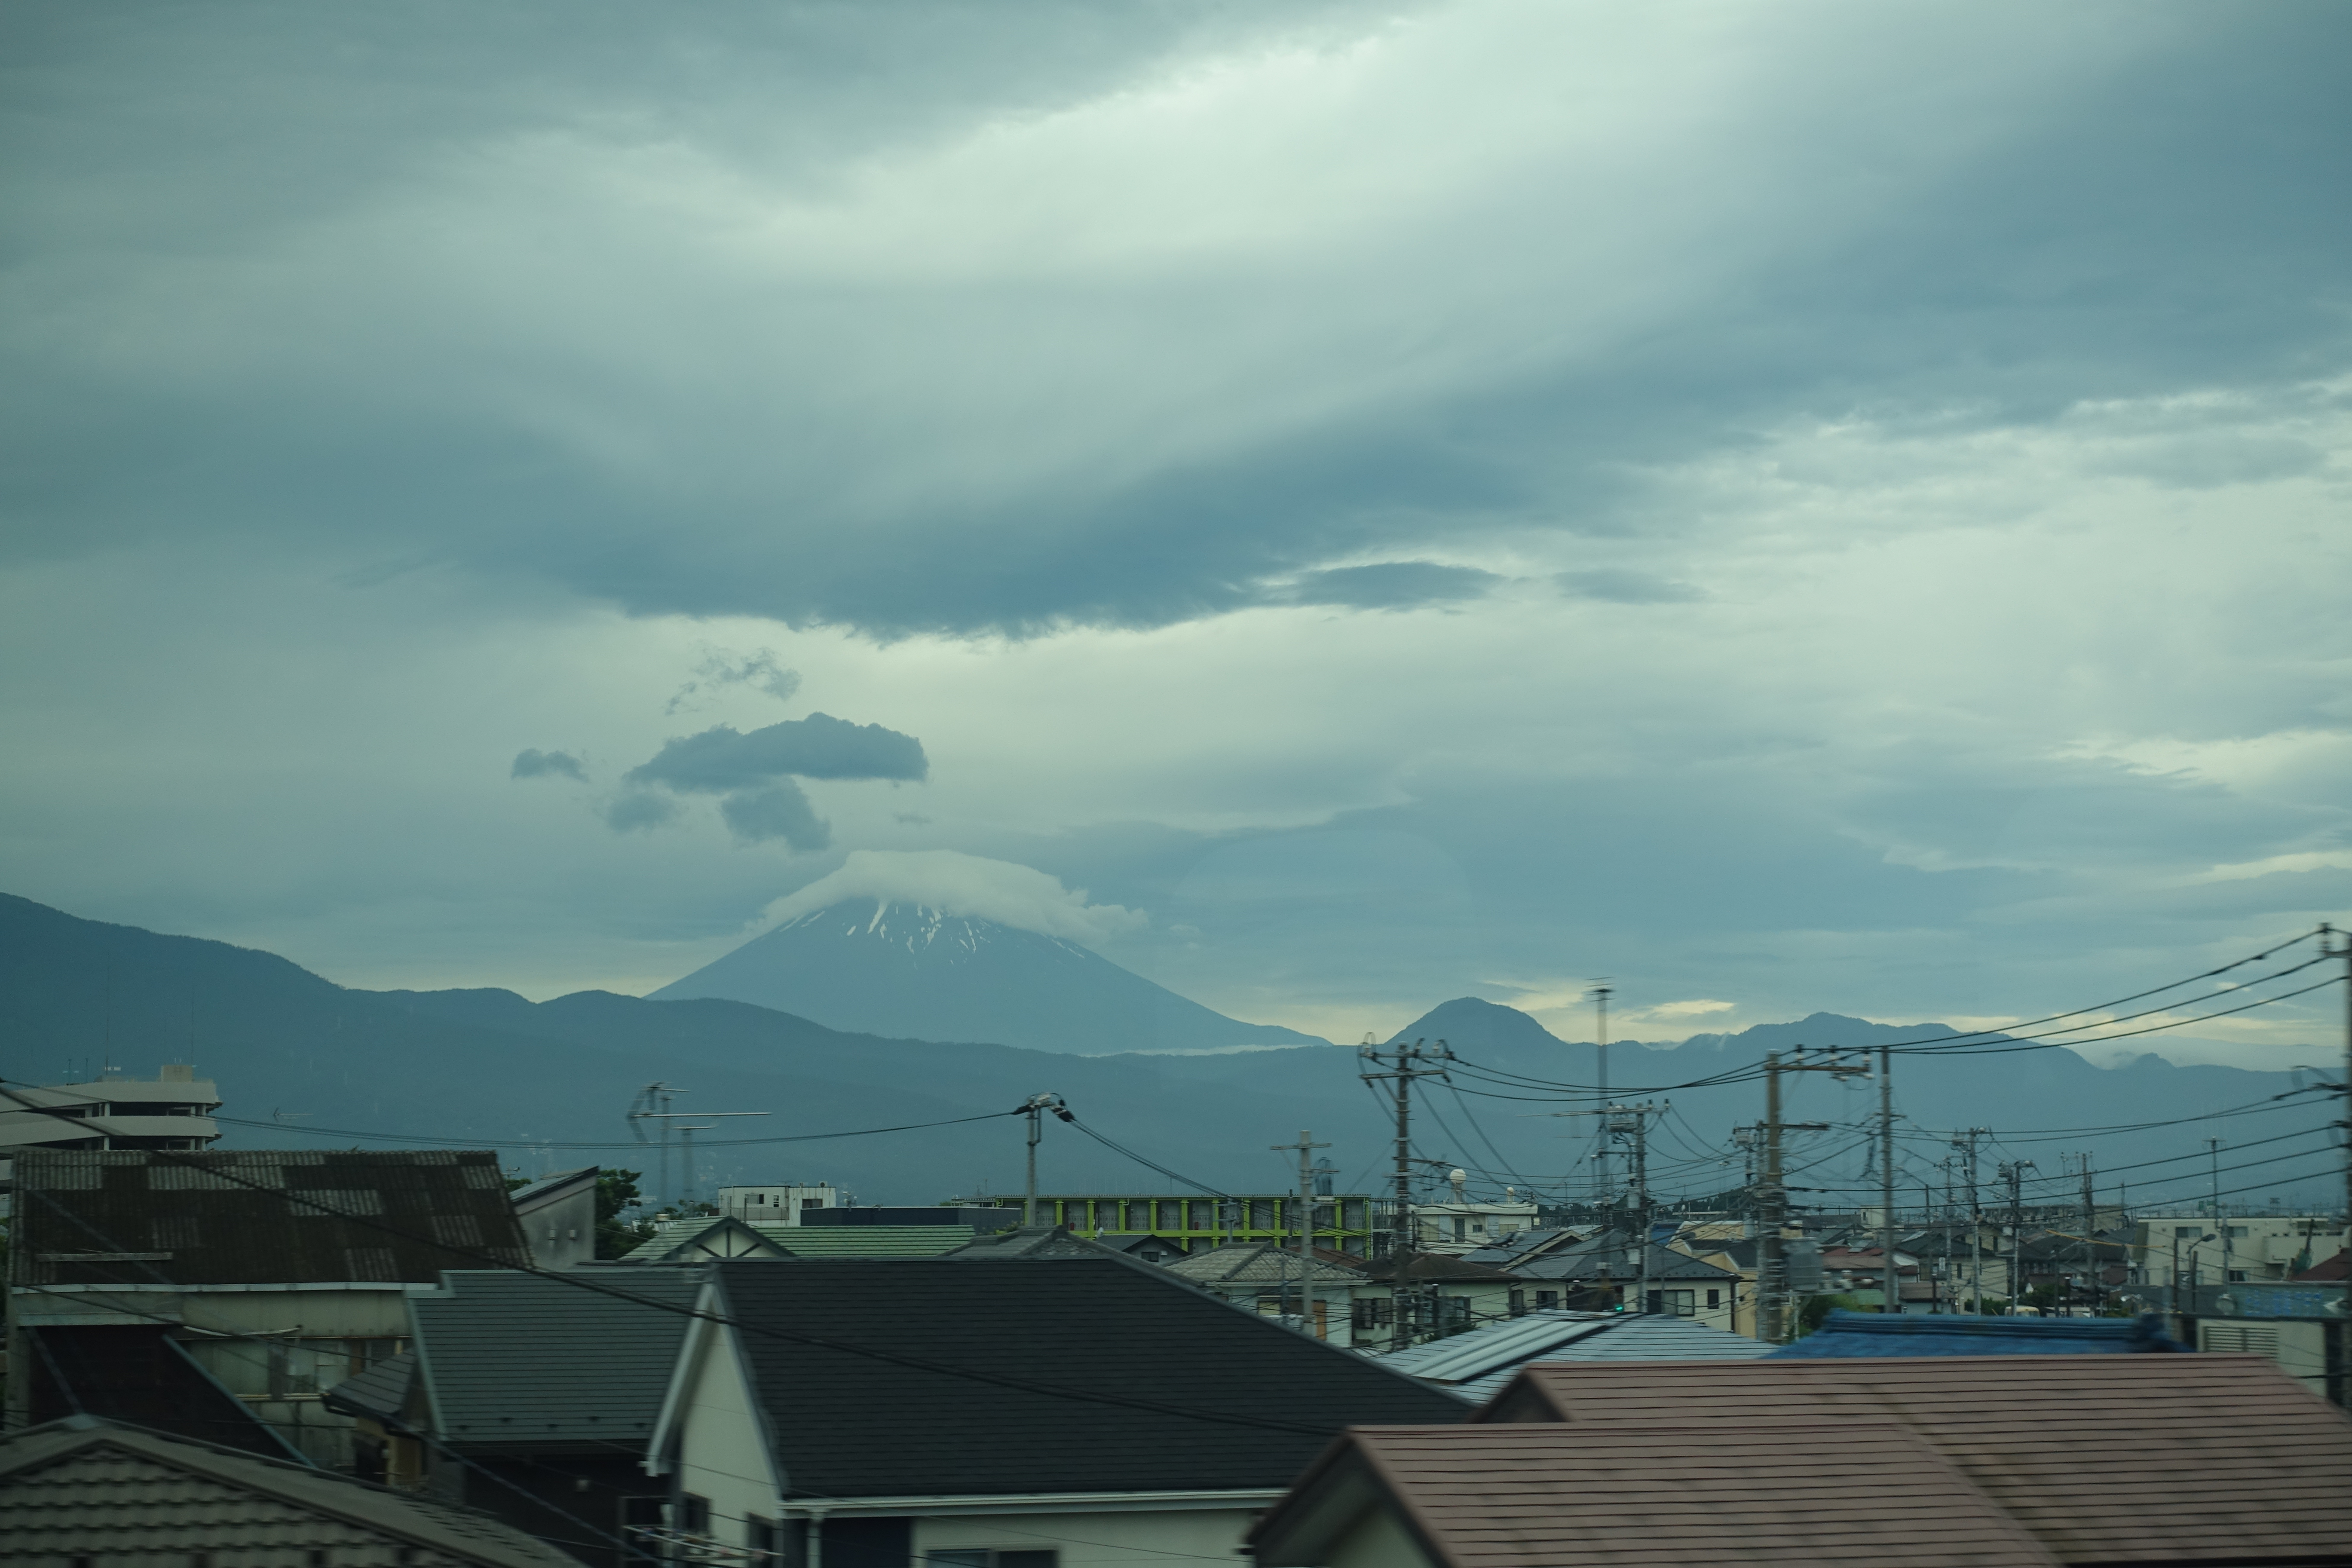 Mount Fuji behind houses